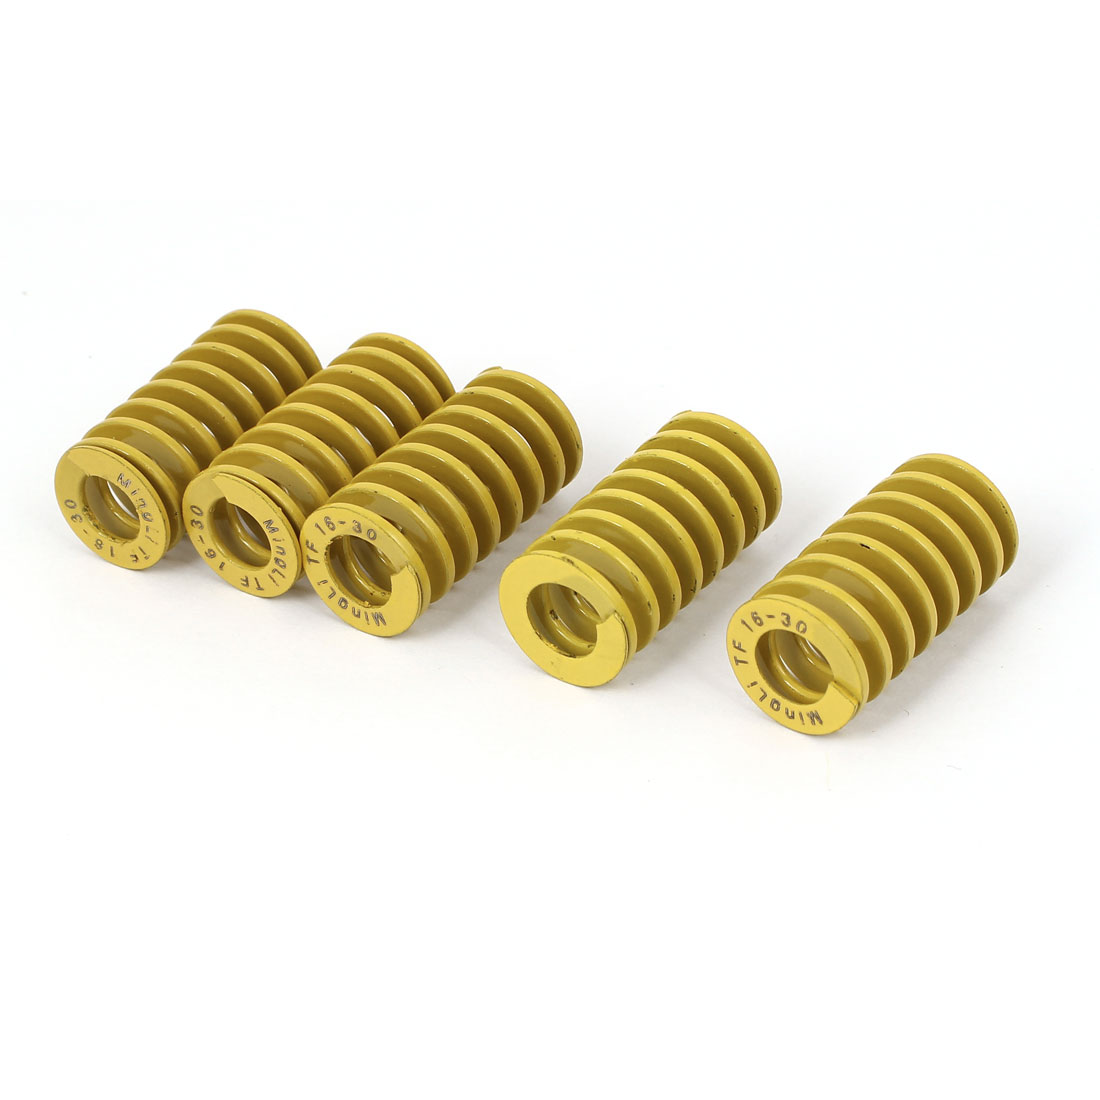 16mm x 30mm Metal Tubular Section Mould Die Compression Spring 5 Pcs